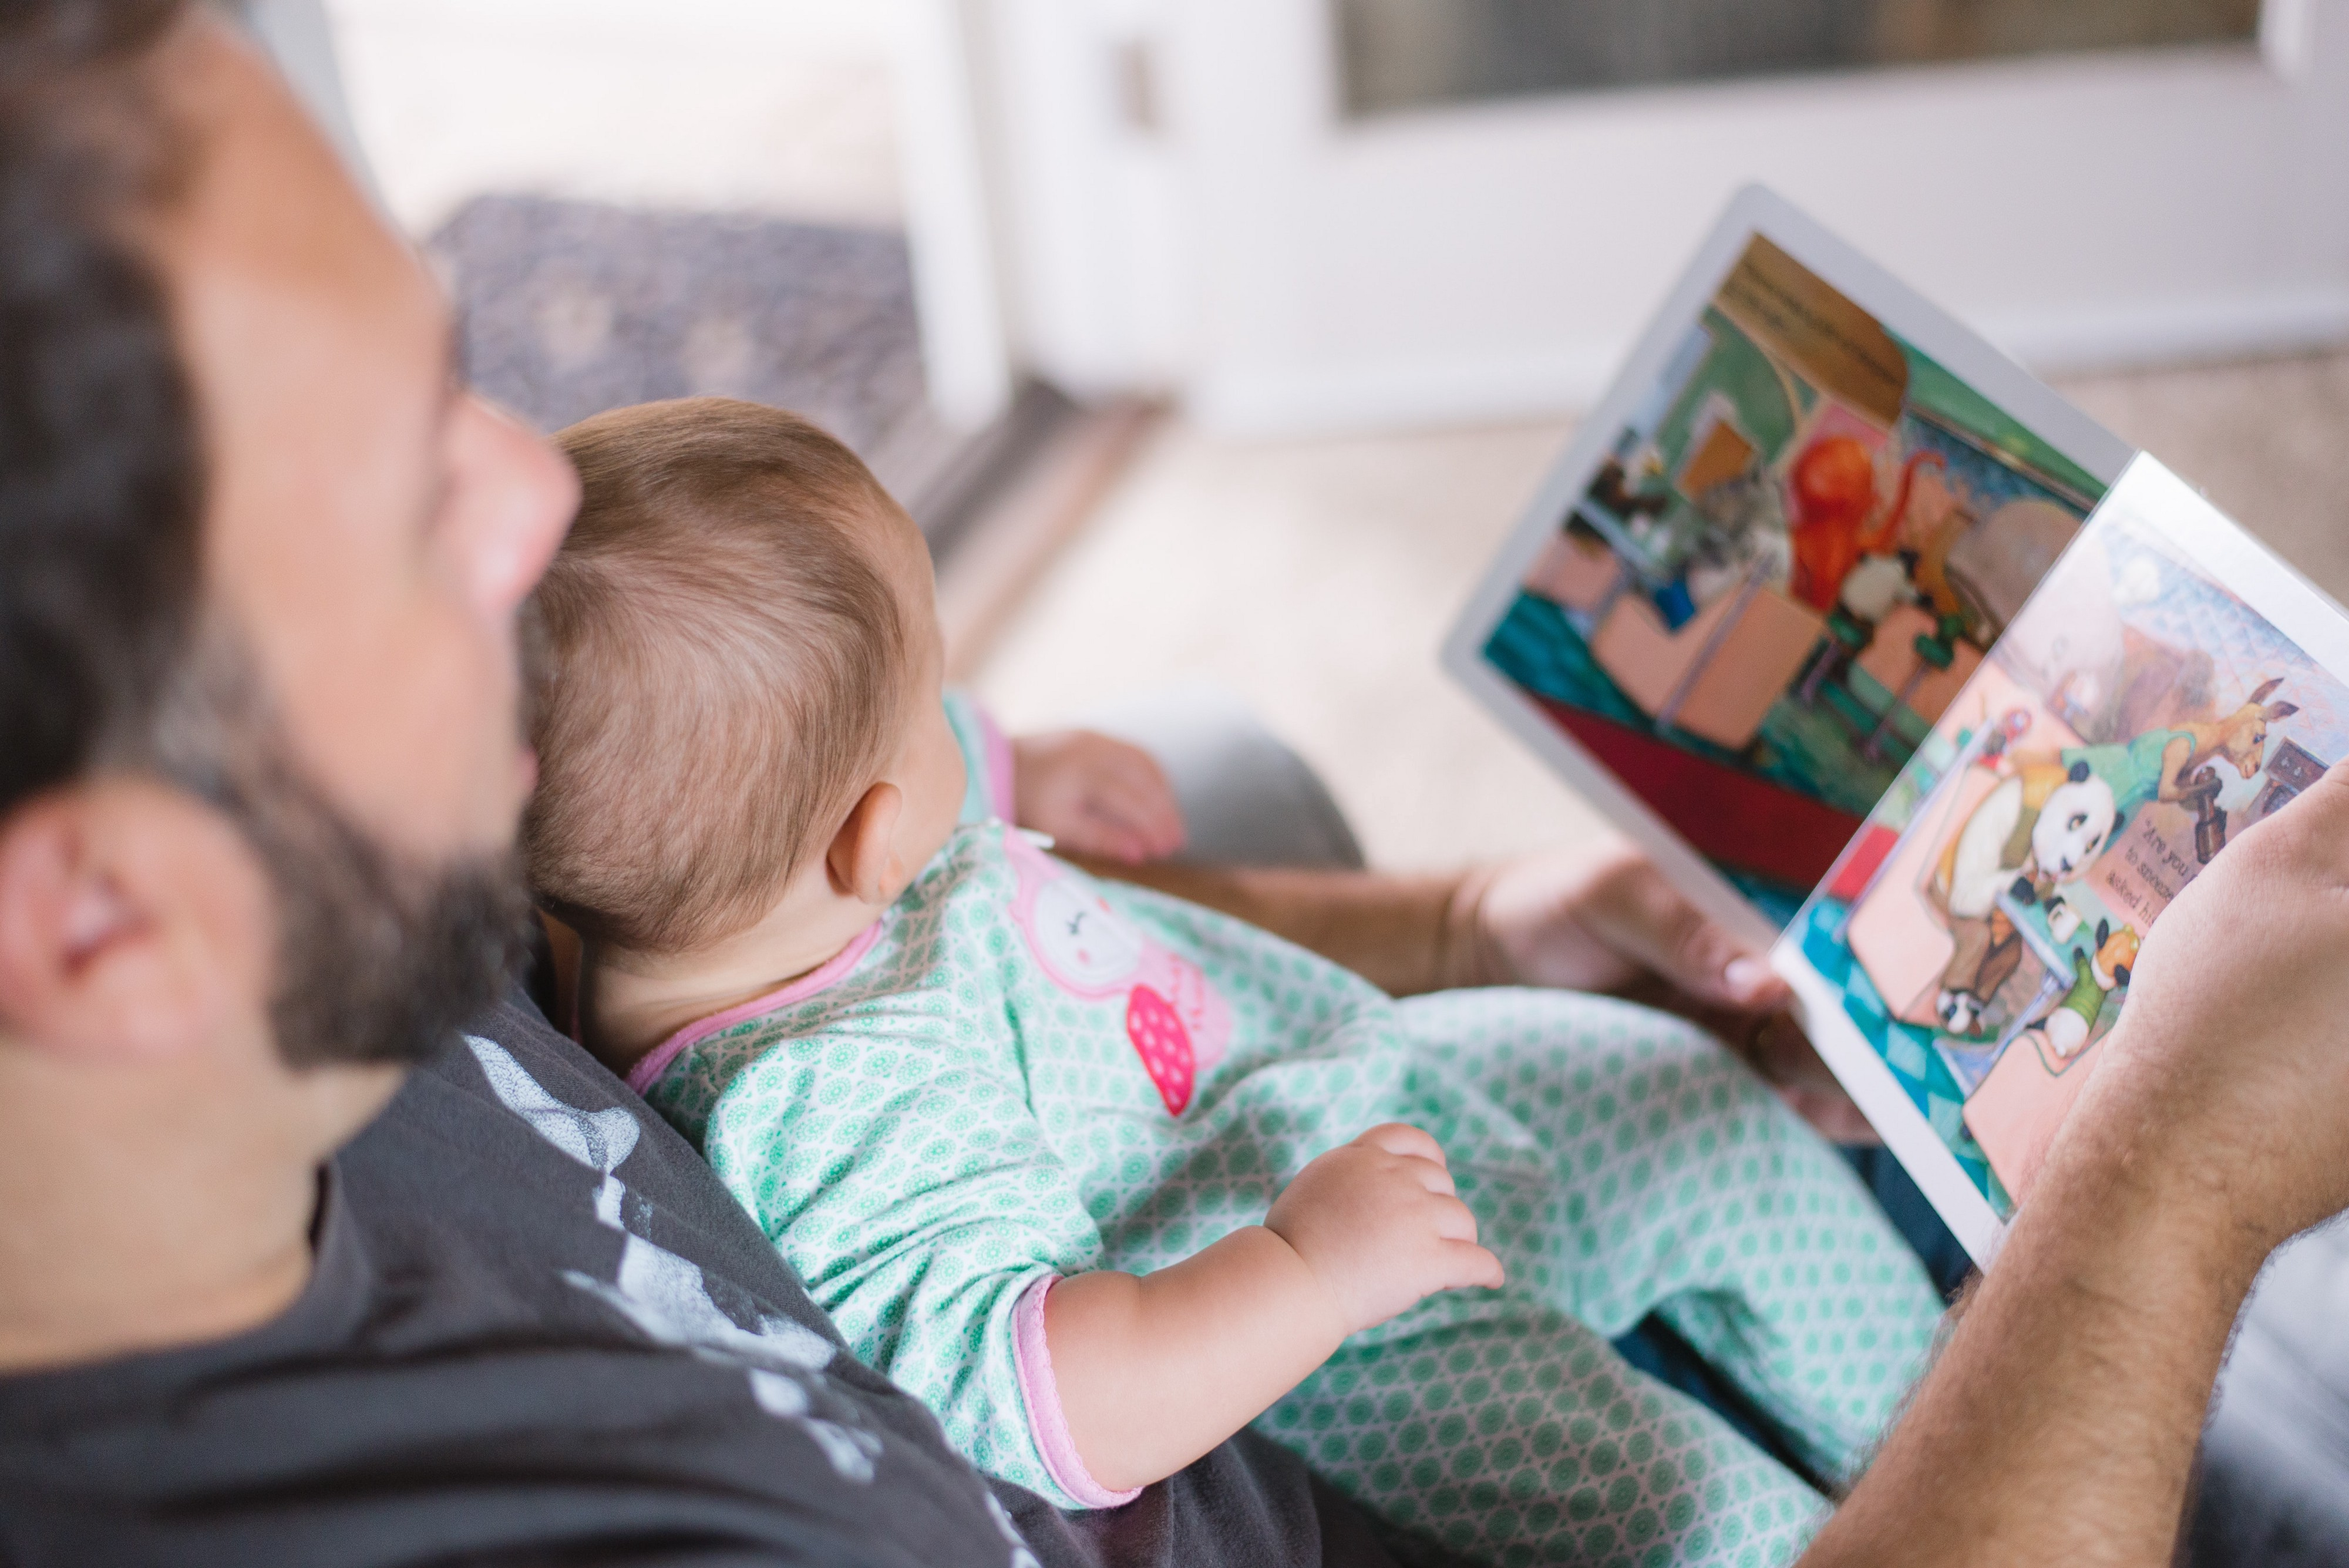 Man reads to his baby who is sitting in his lap.